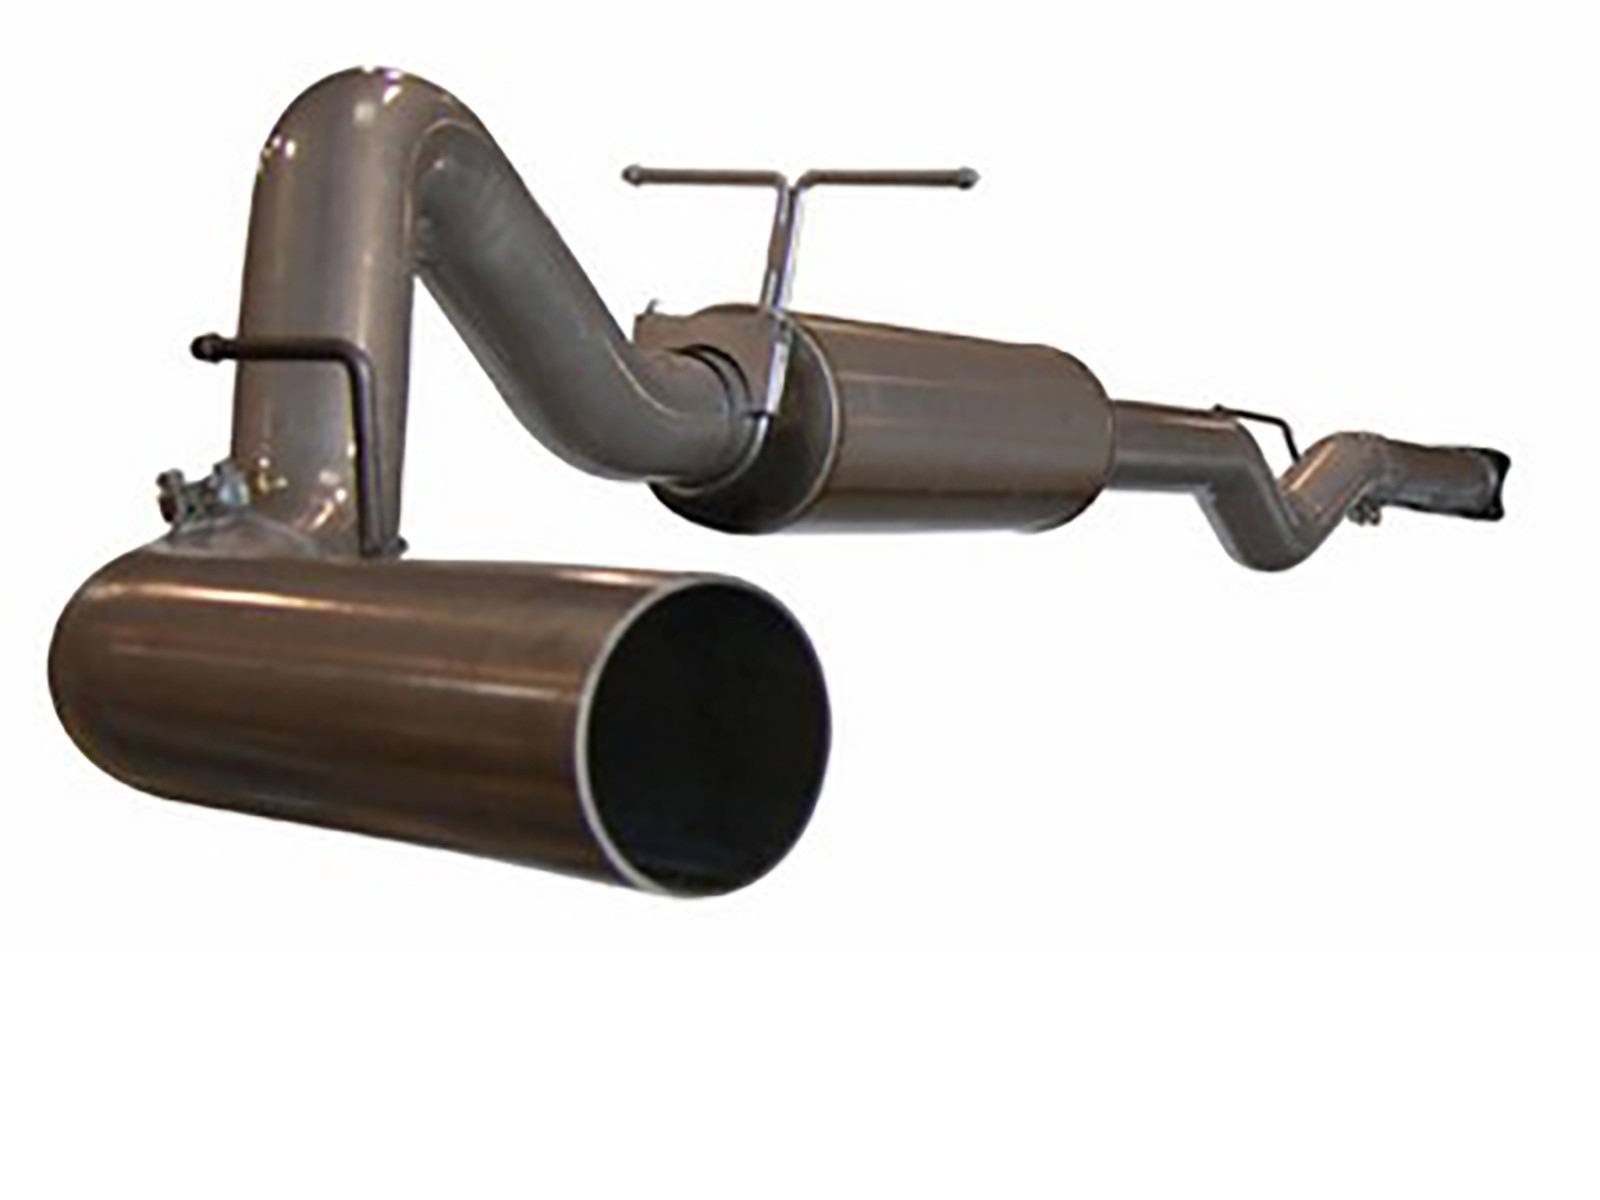 "aFe POWER 49-14002 Large Bore-HD 4"" 409 Stainless Steel Cat-Back Exhaust System"